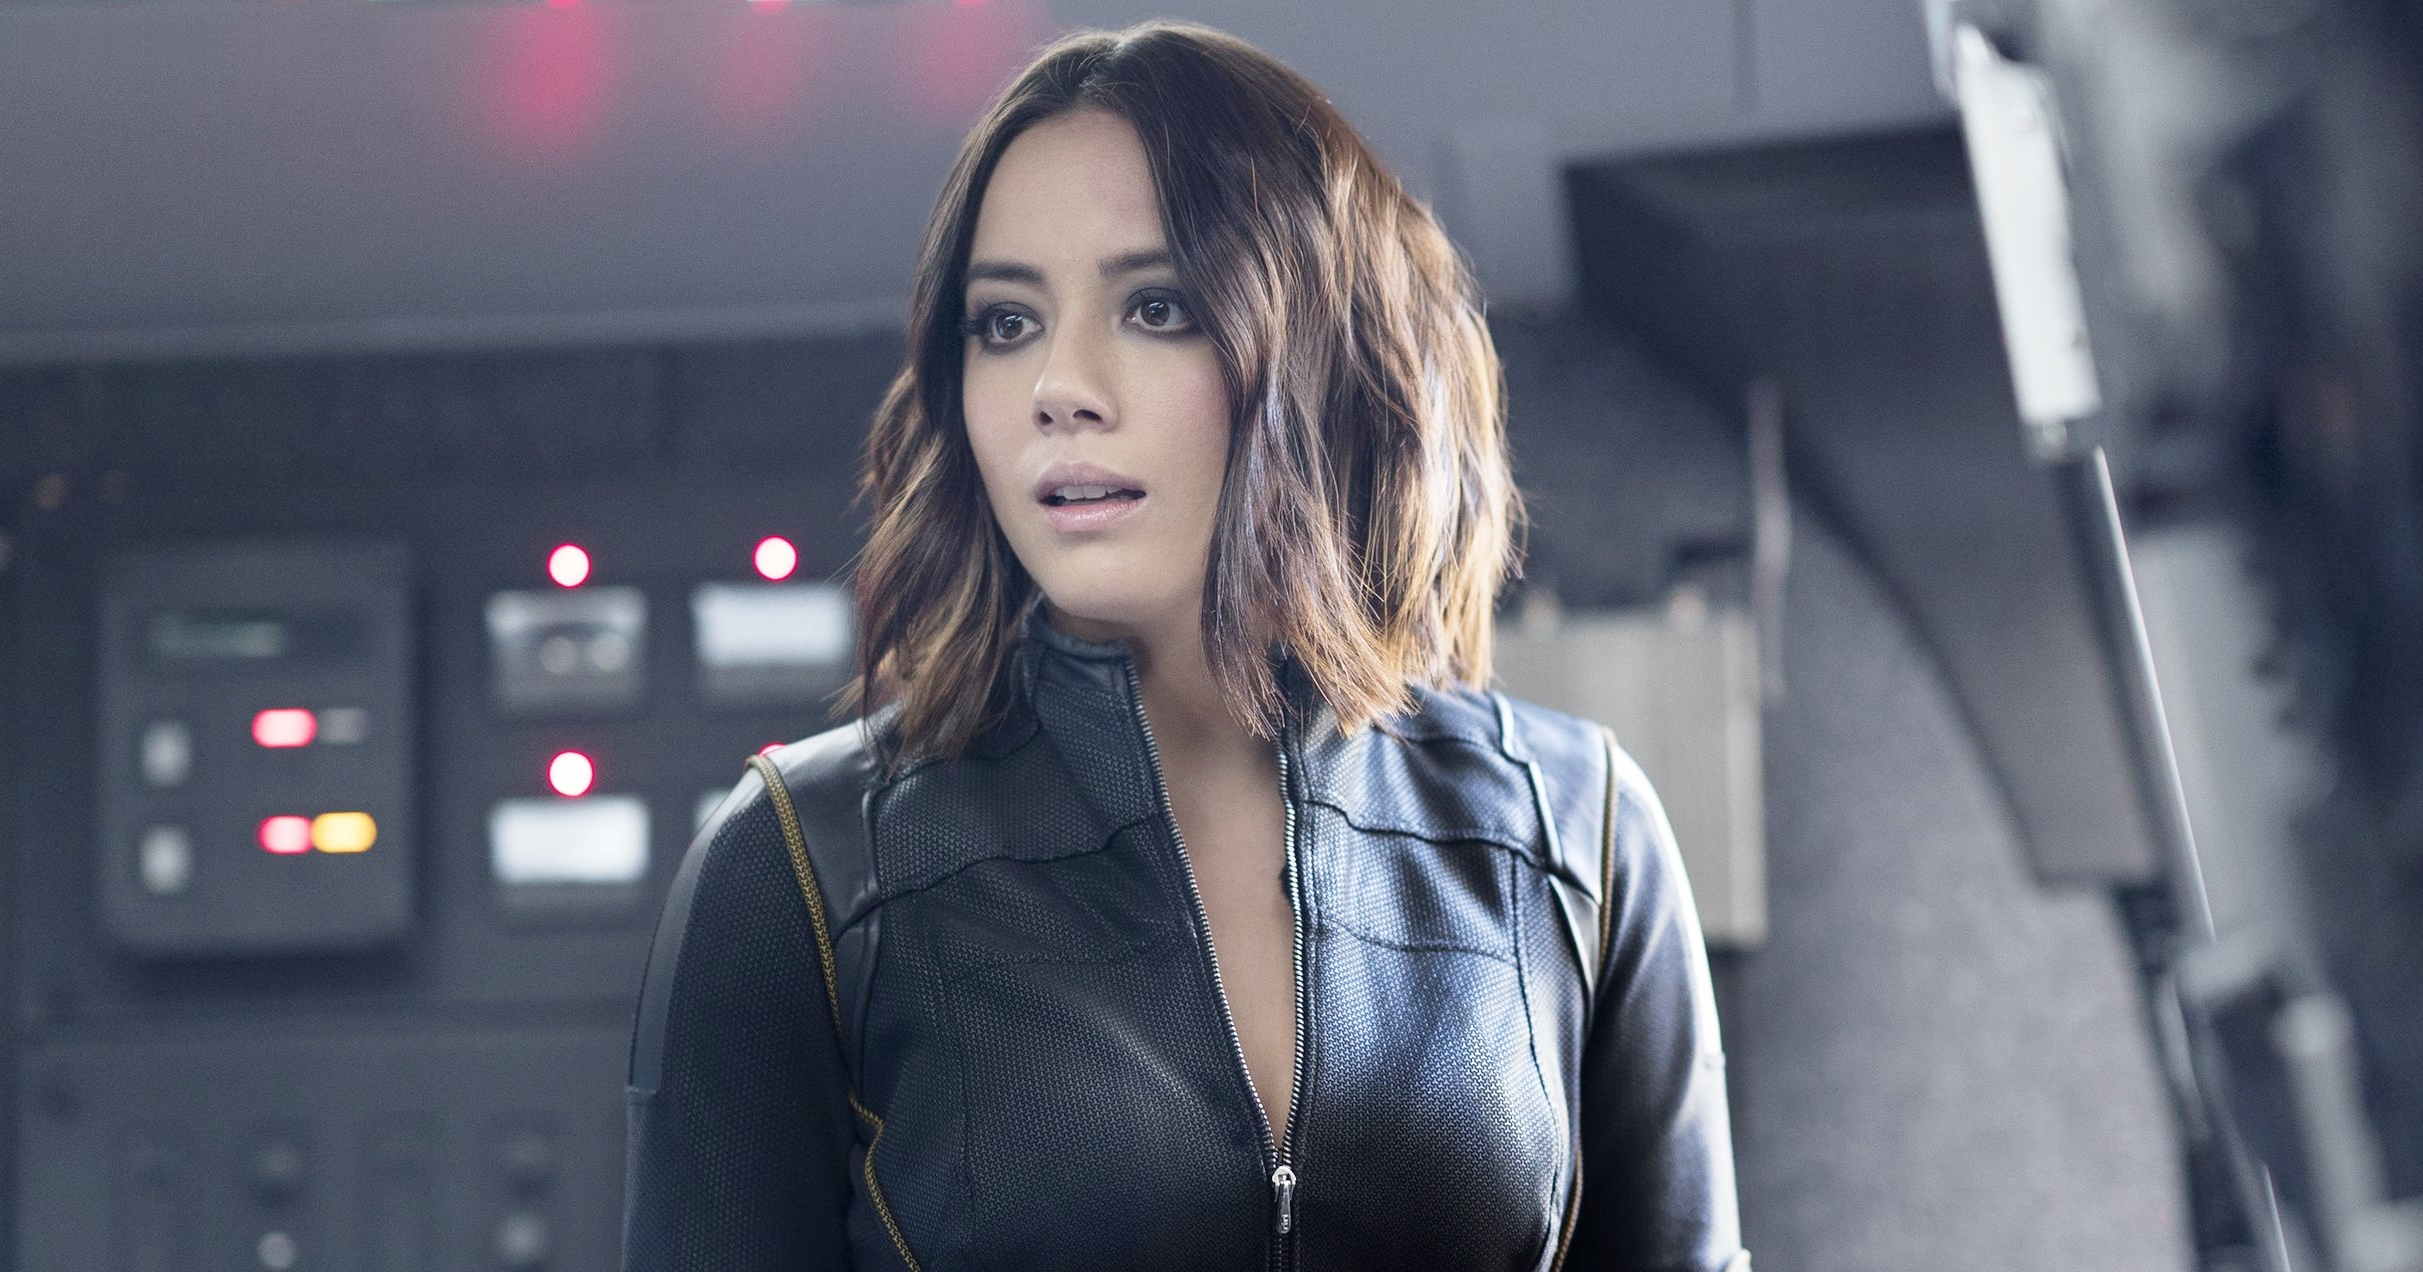 chloe-bennet-as-daisy-johnson-in-agent-of-shield-season-4-image.jpg